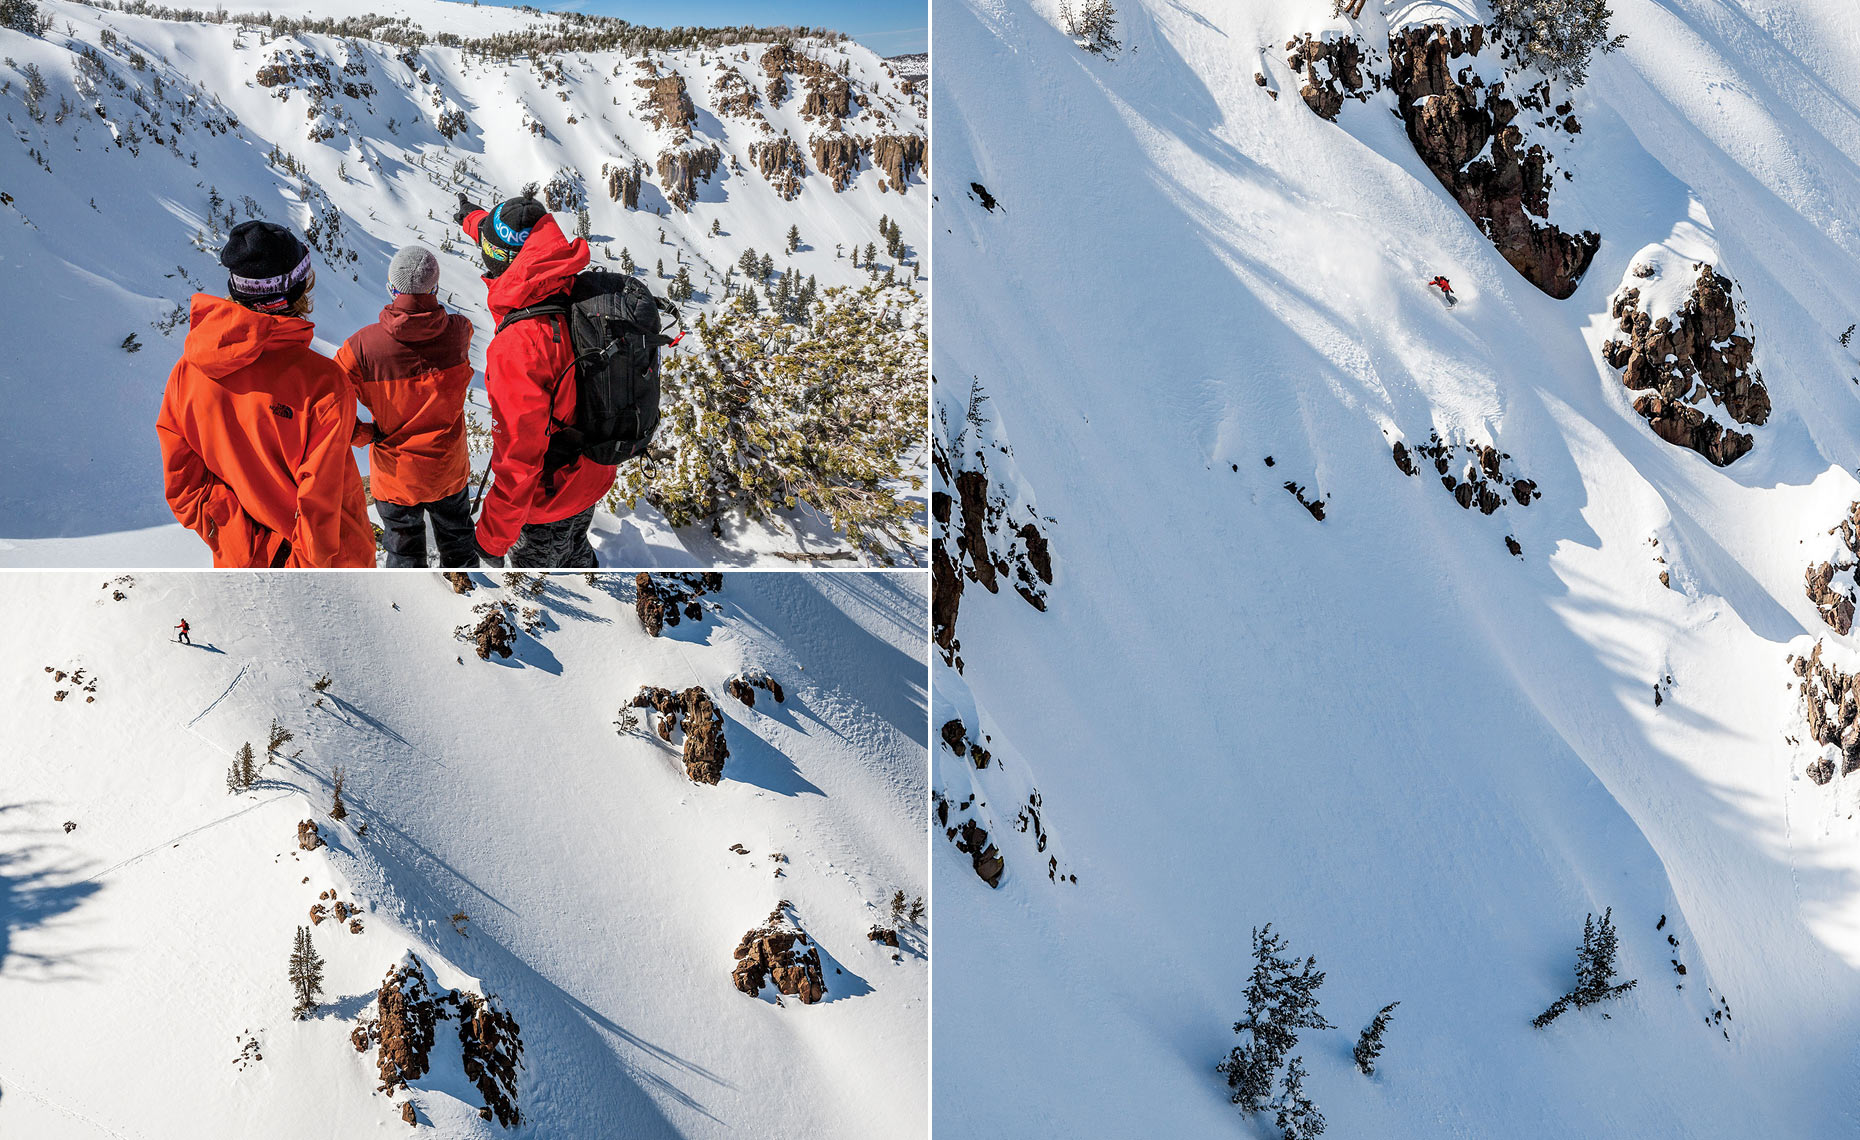 Phantom-Lifts-June-To-Mammoth-TWSNOW-Chris-Wellhausen-14